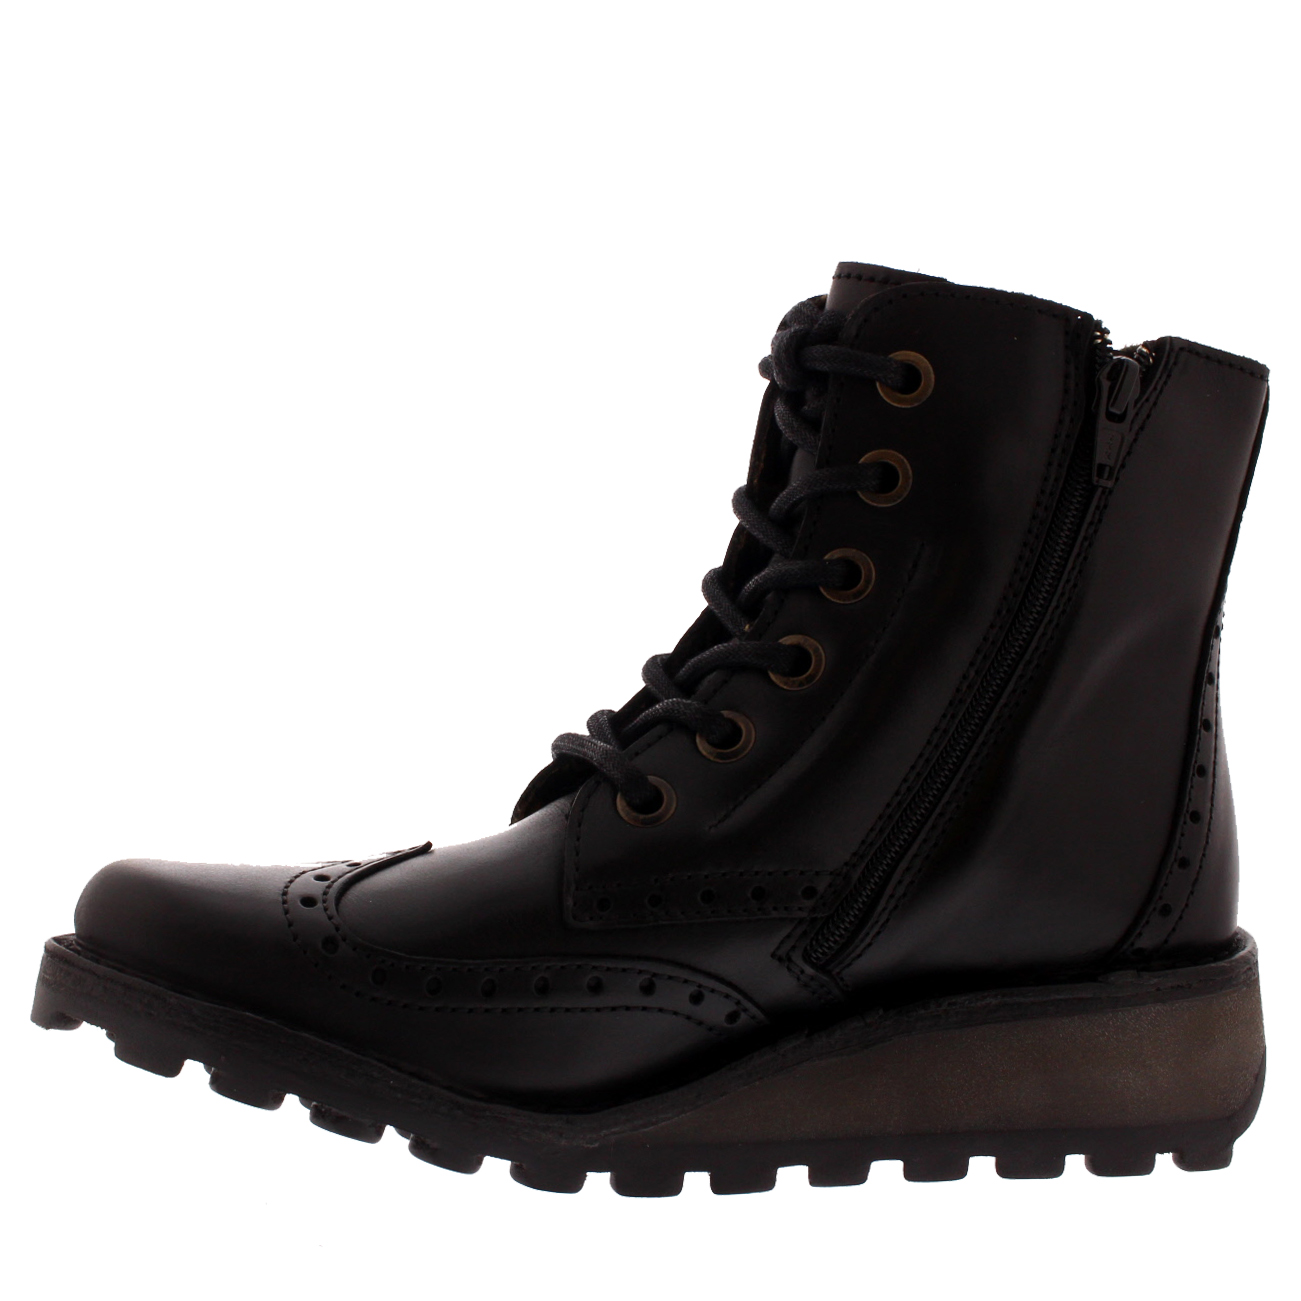 2738646ef8c Womens Fly London Black Leather Lace up Ankle BOOTS UK Size 5 *ex ...